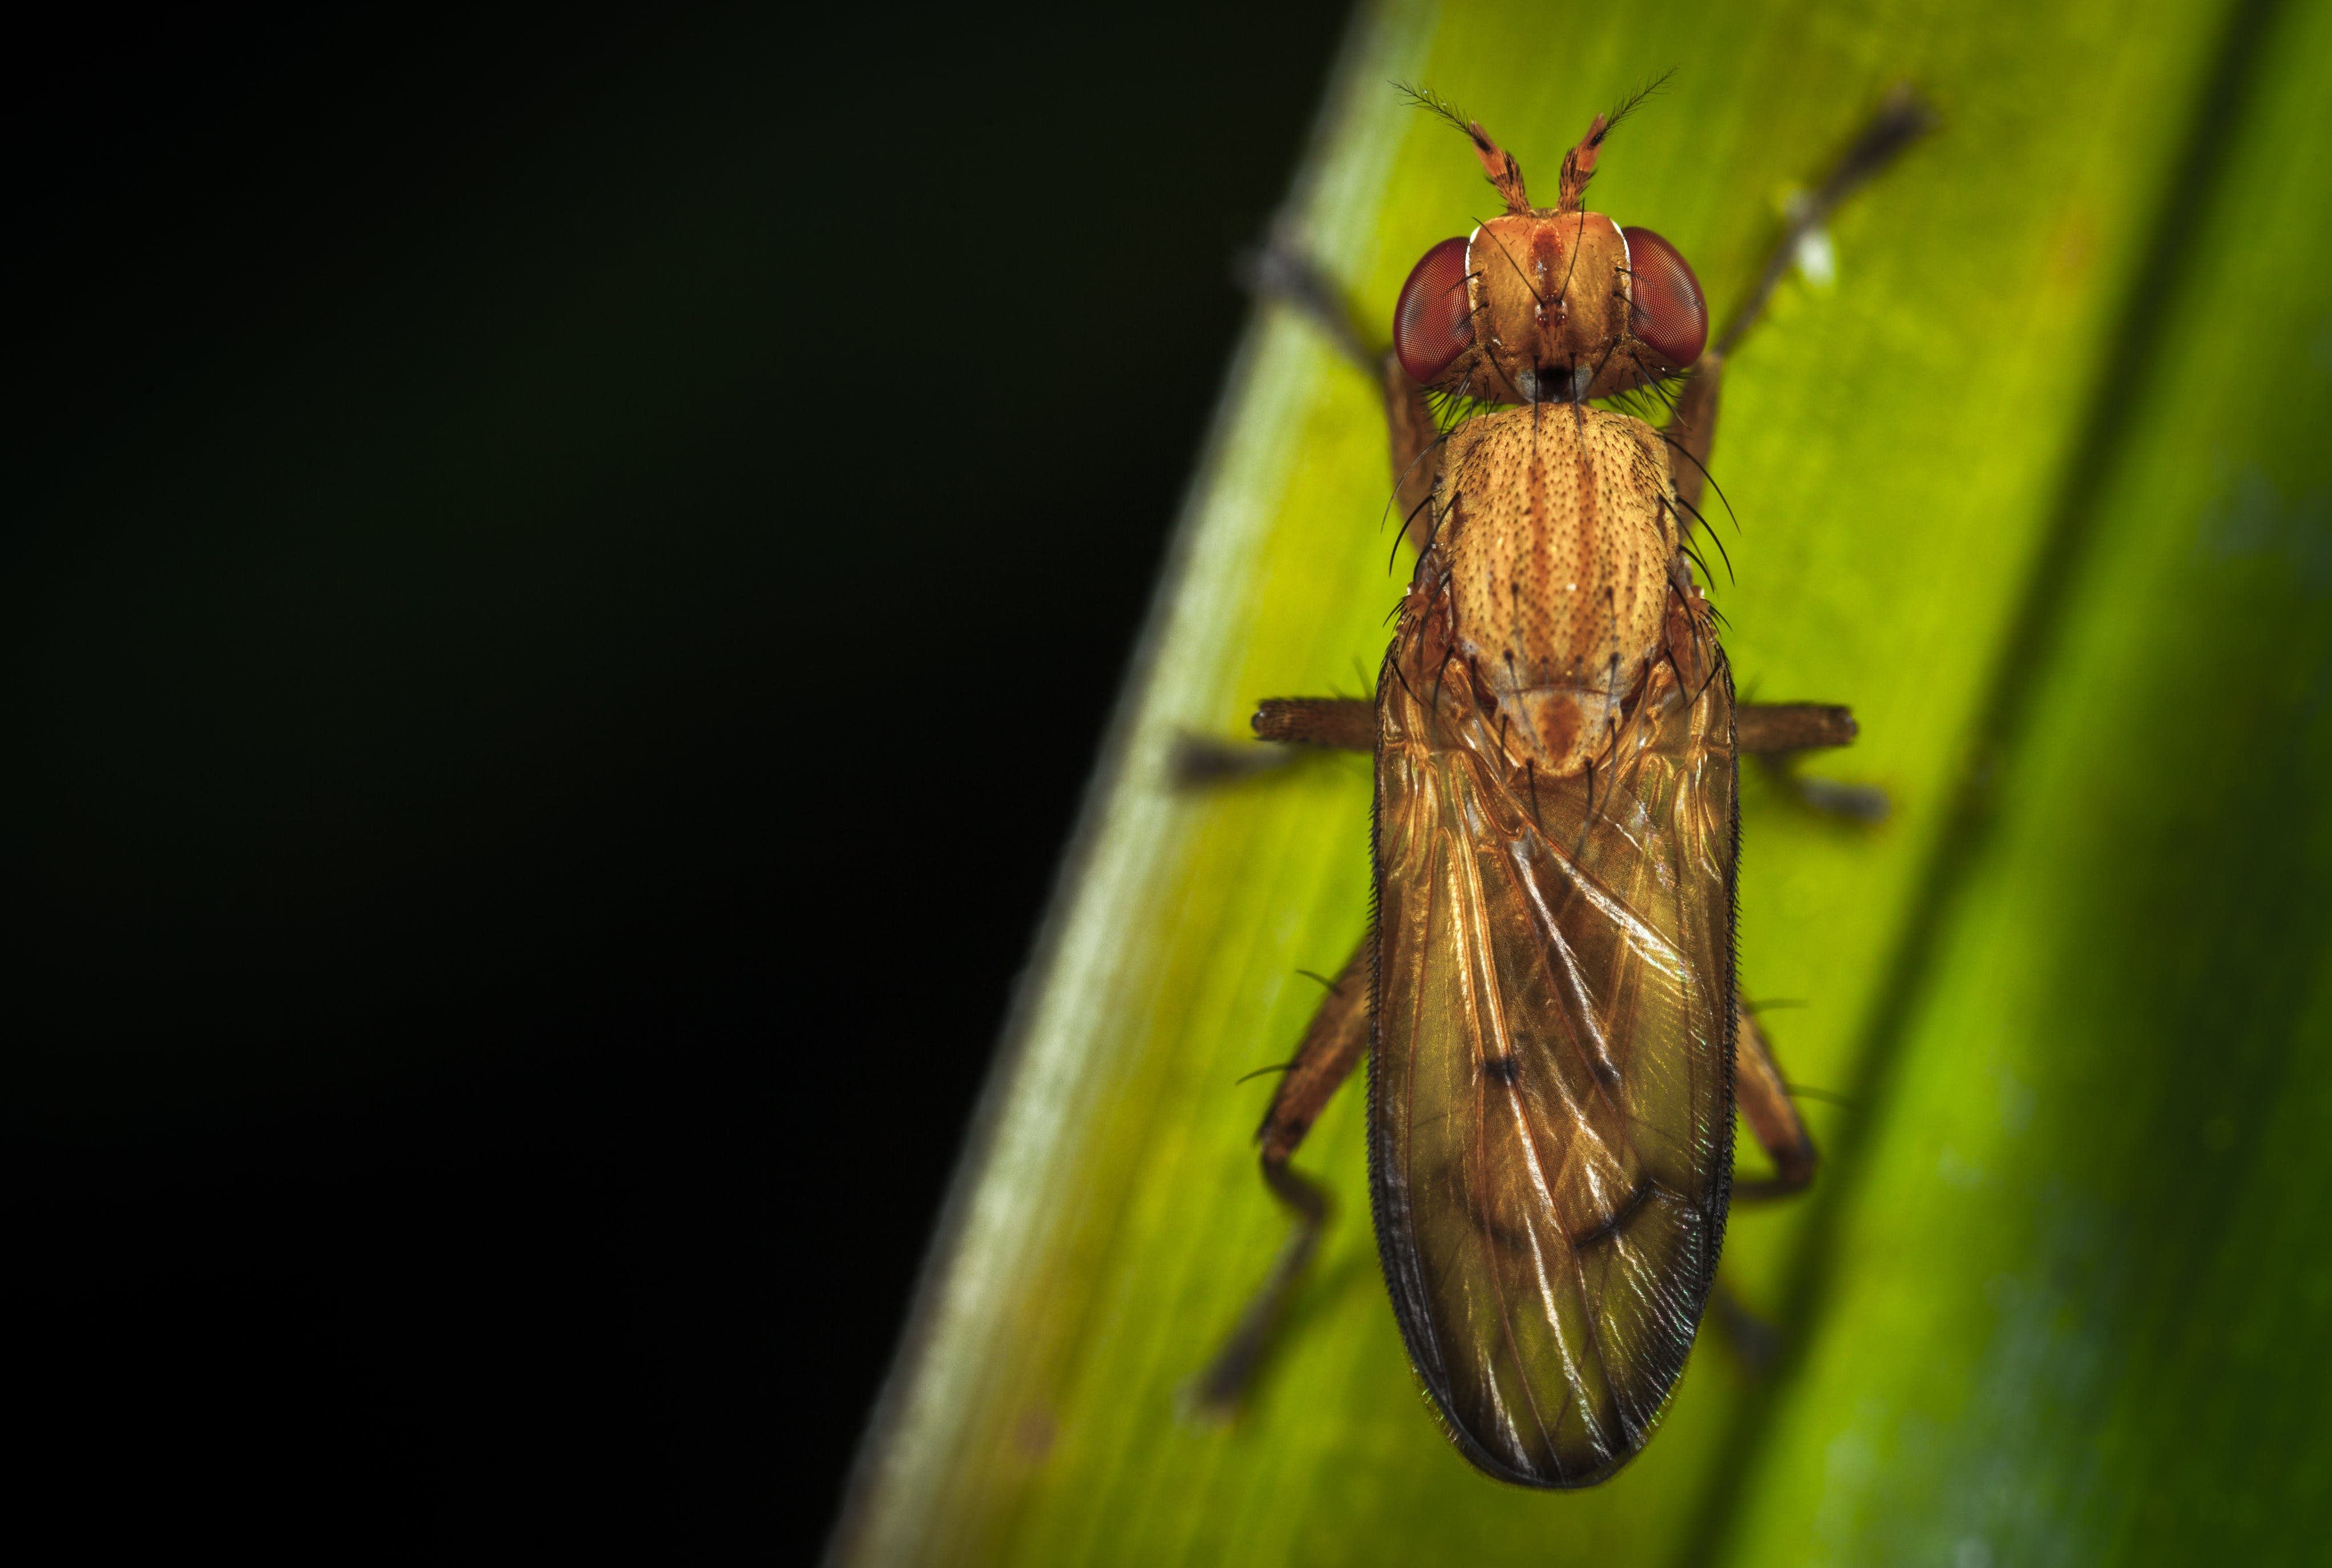 Close-up Photography of Brown Insect Perching on Green Leaf